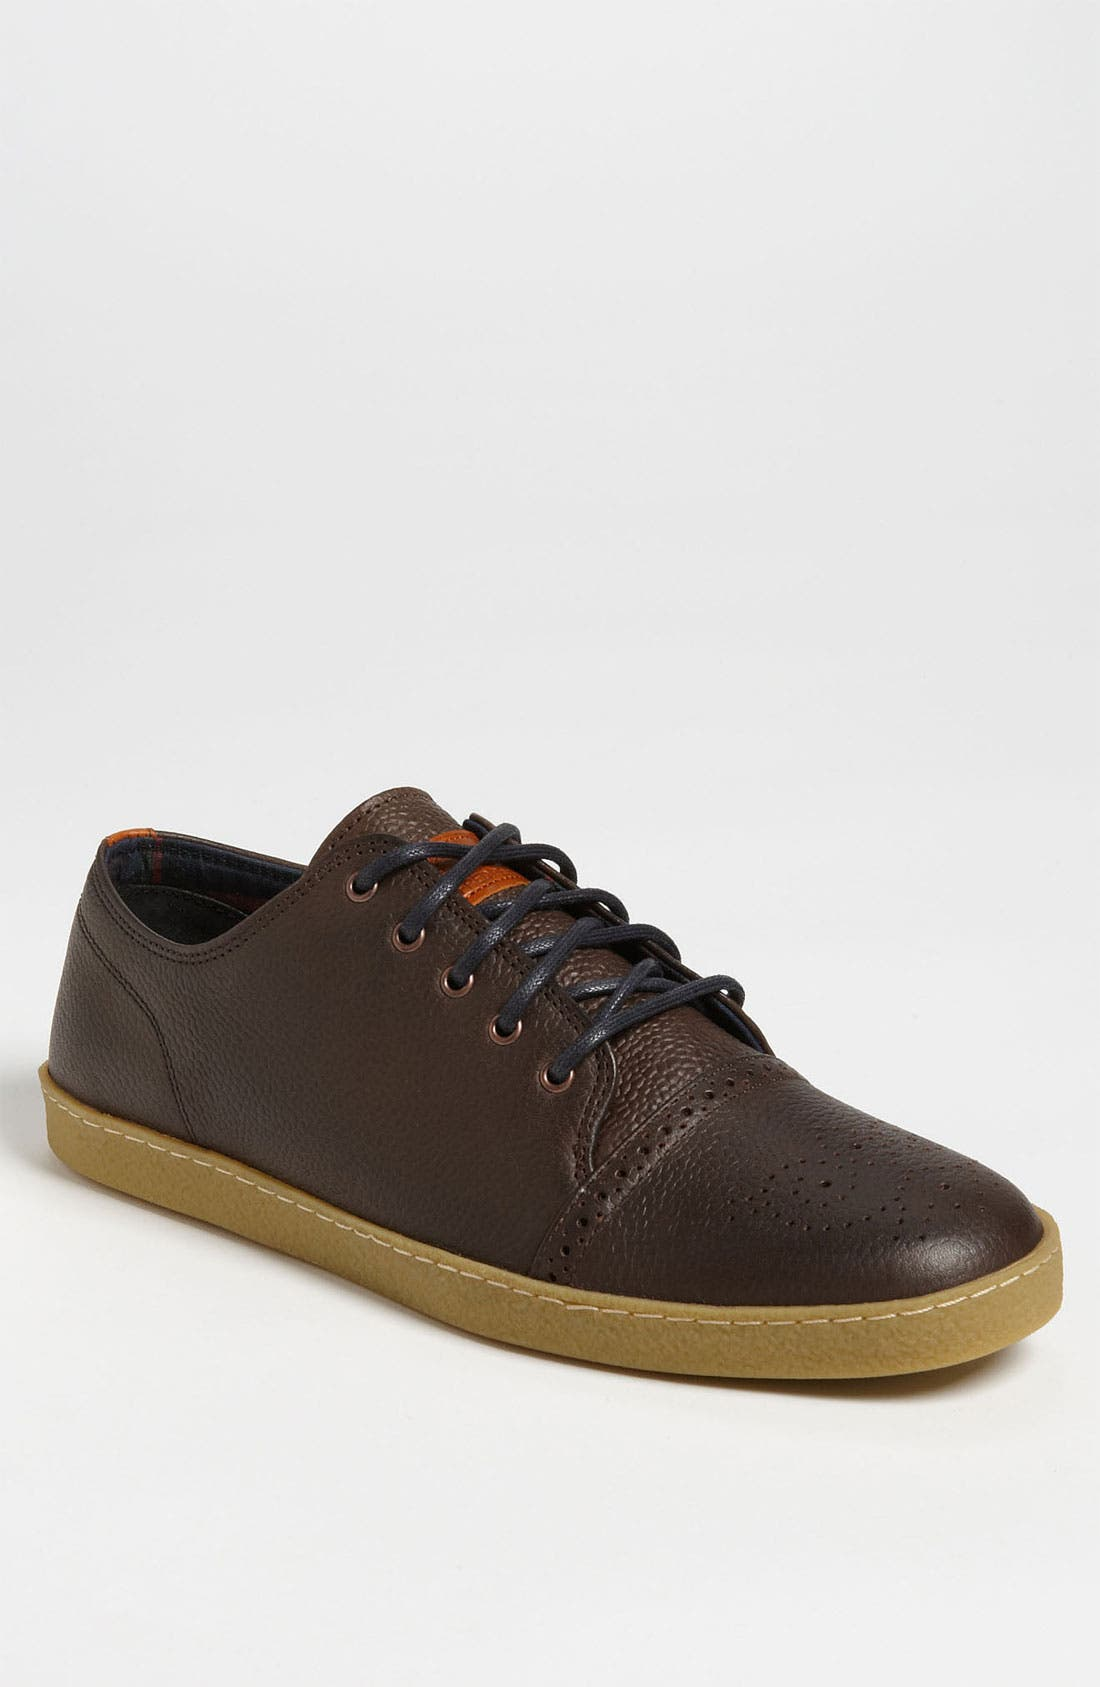 Alternate Image 1 Selected - Fred Perry 'Deighton' Leather Sneaker